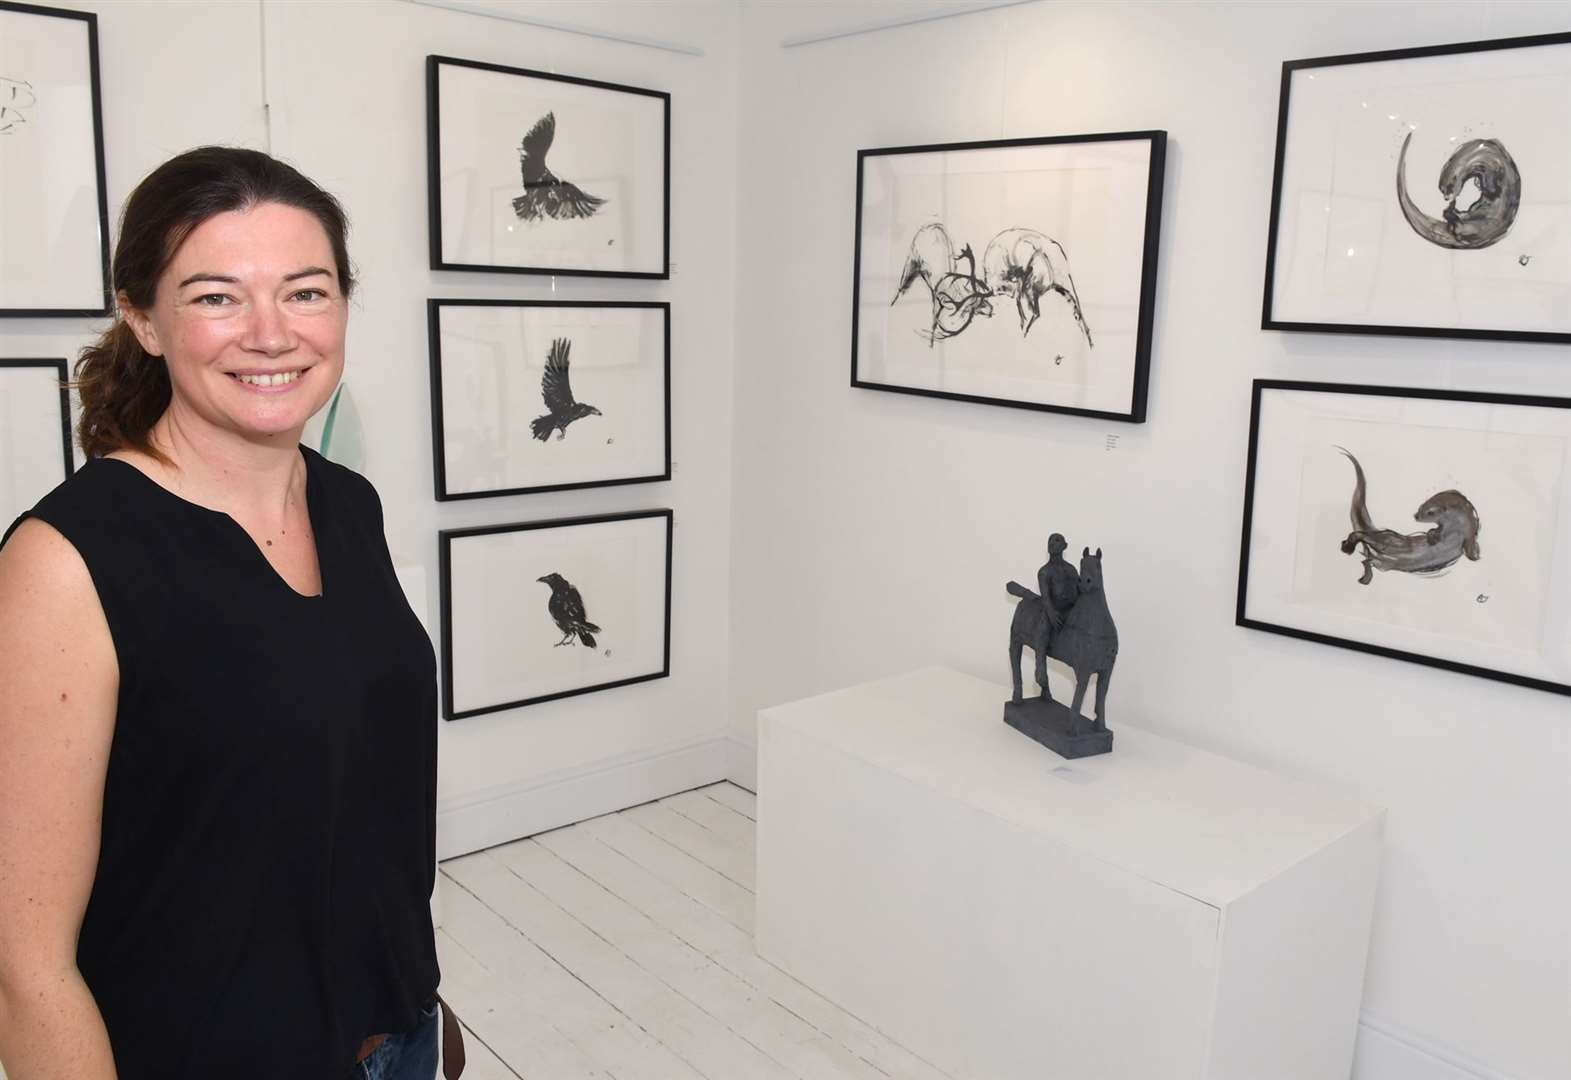 Artist's exhibition is a walk on the wild side